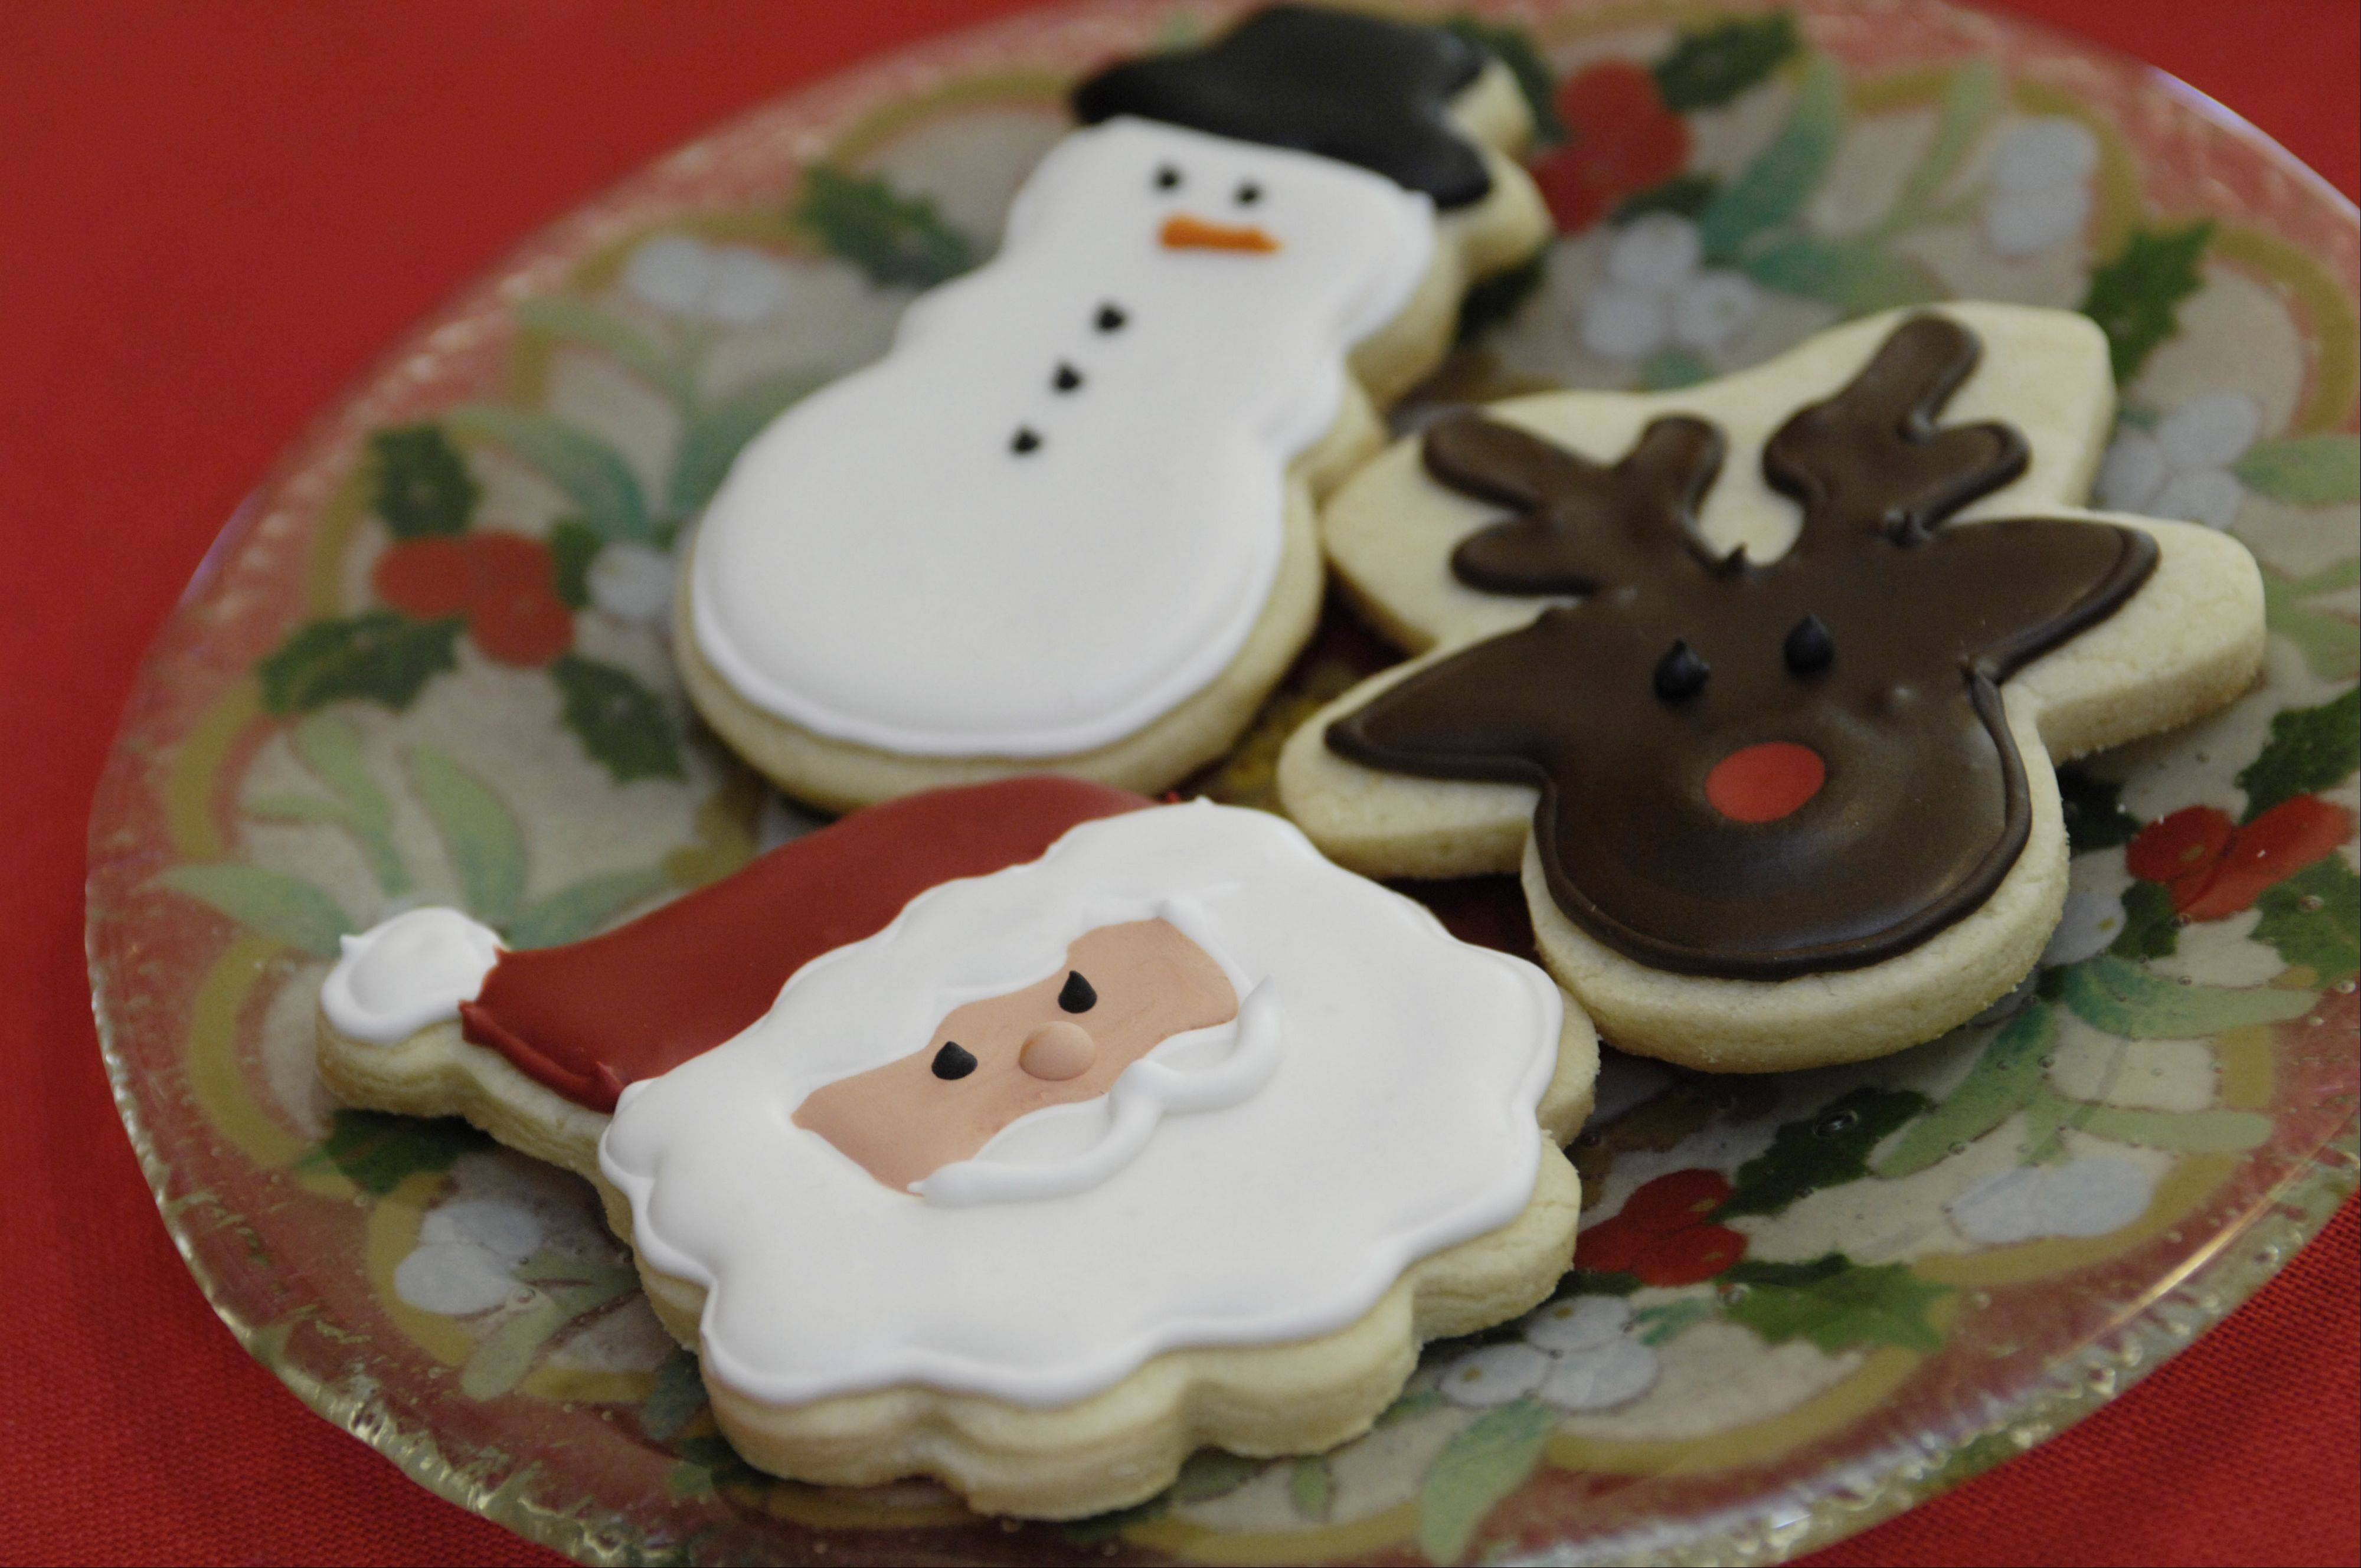 Danae Chatel lovingly decorates holiday cookies.